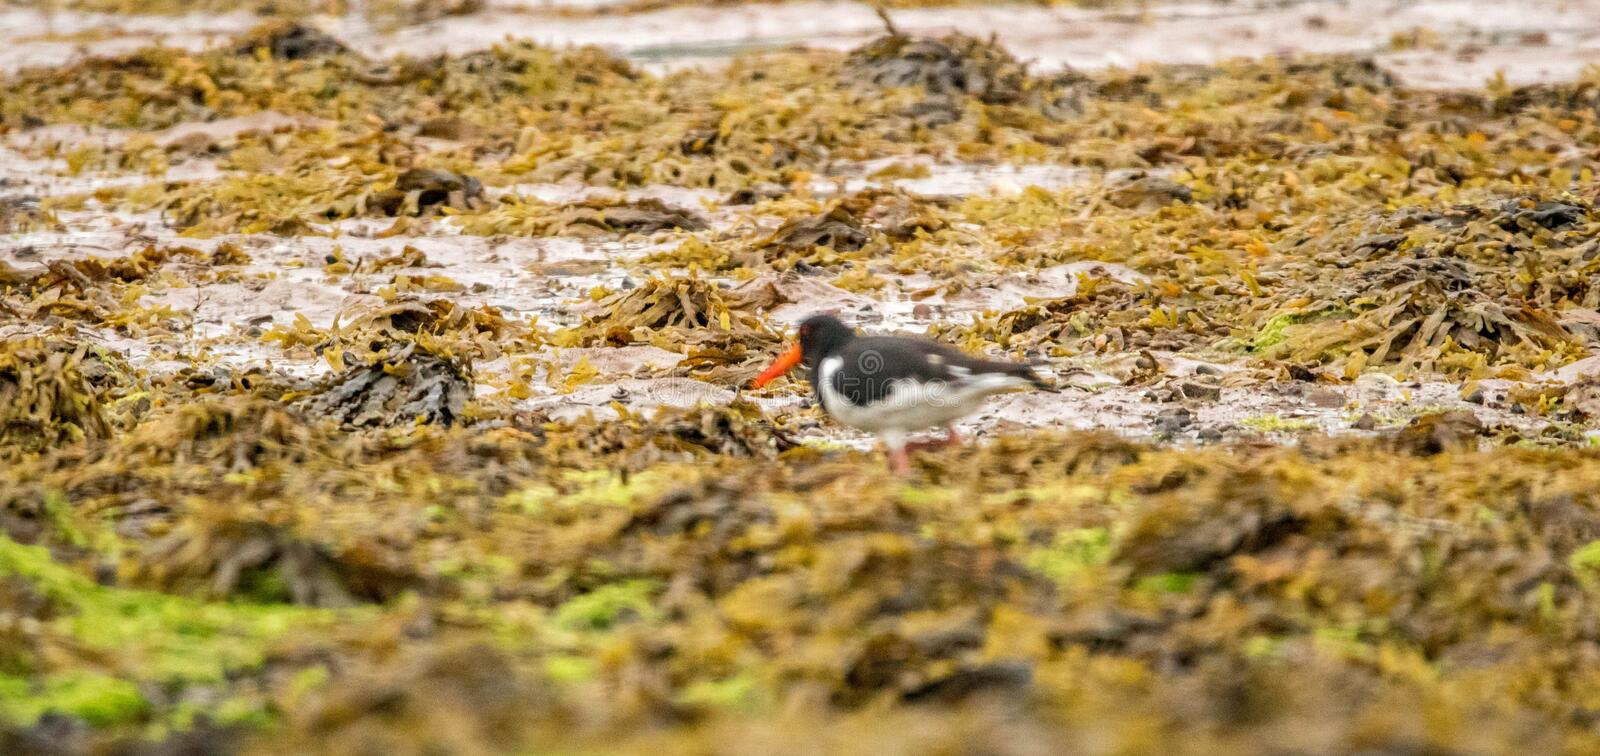 Oyster Catcher. One of the common bird types in the UK coastlines, the Oyster Catcher stock images